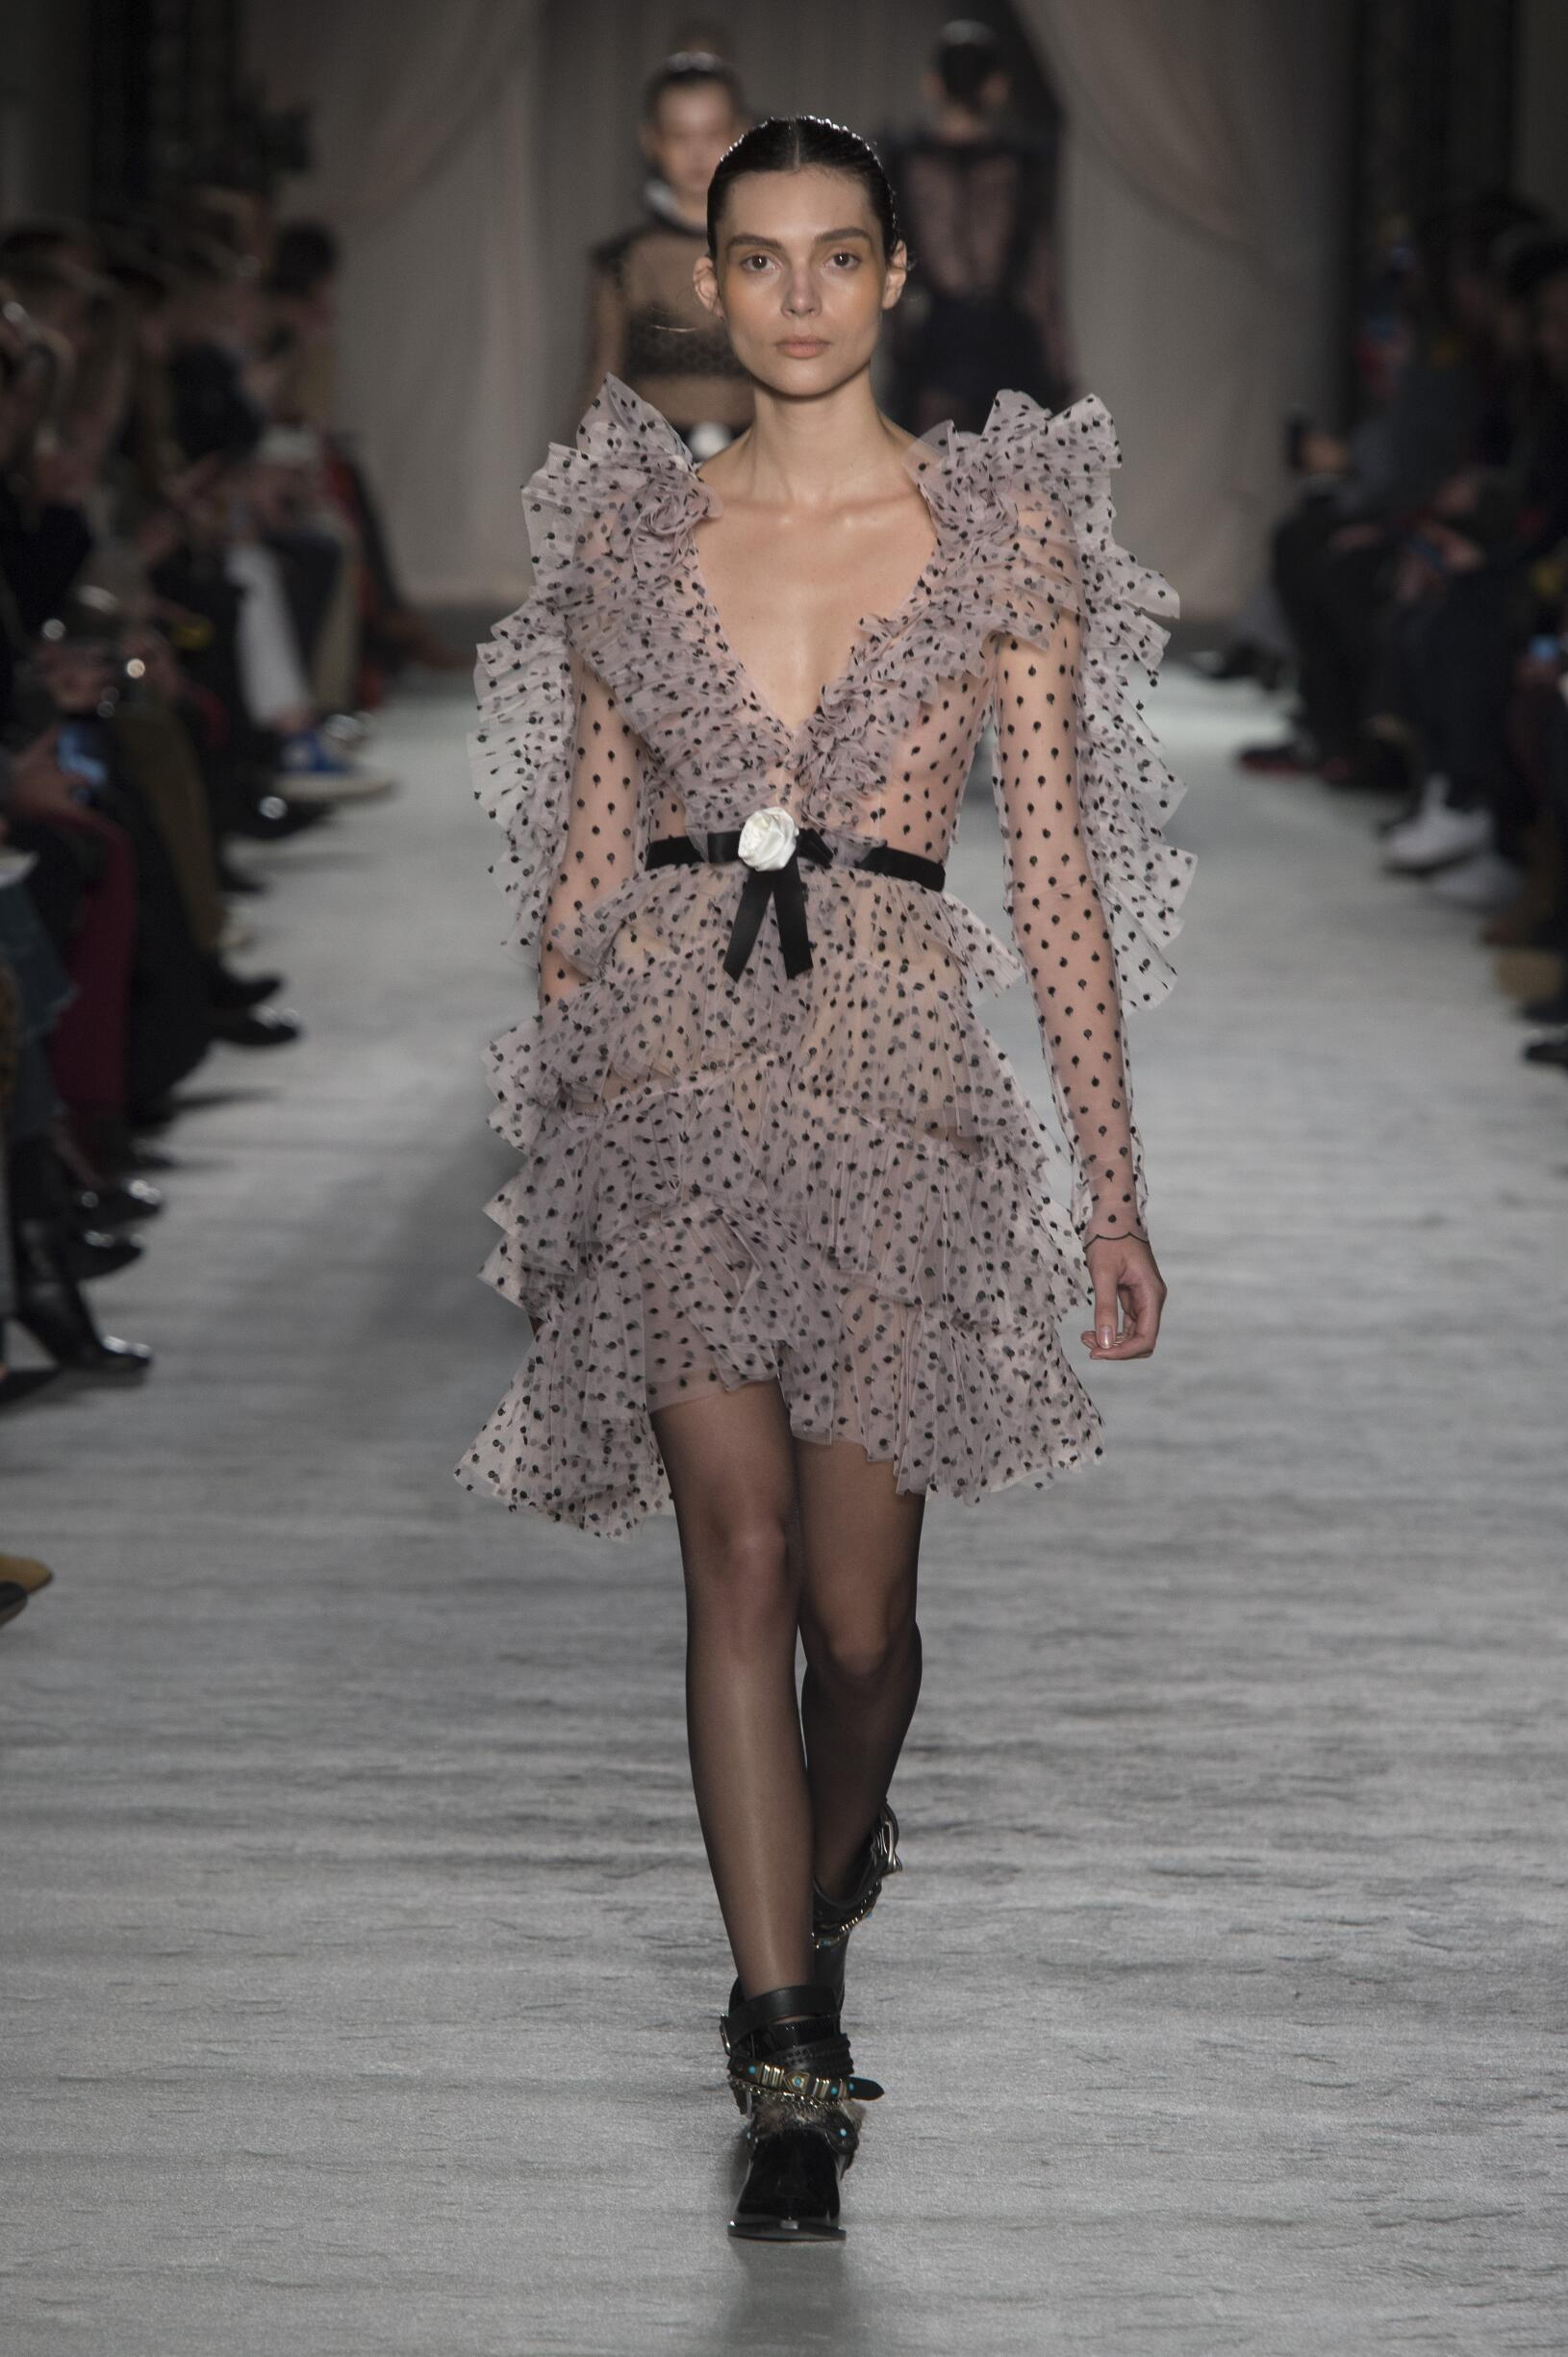 Fall Fashion 2018-19 Philosophy di Lorenzo Serafini